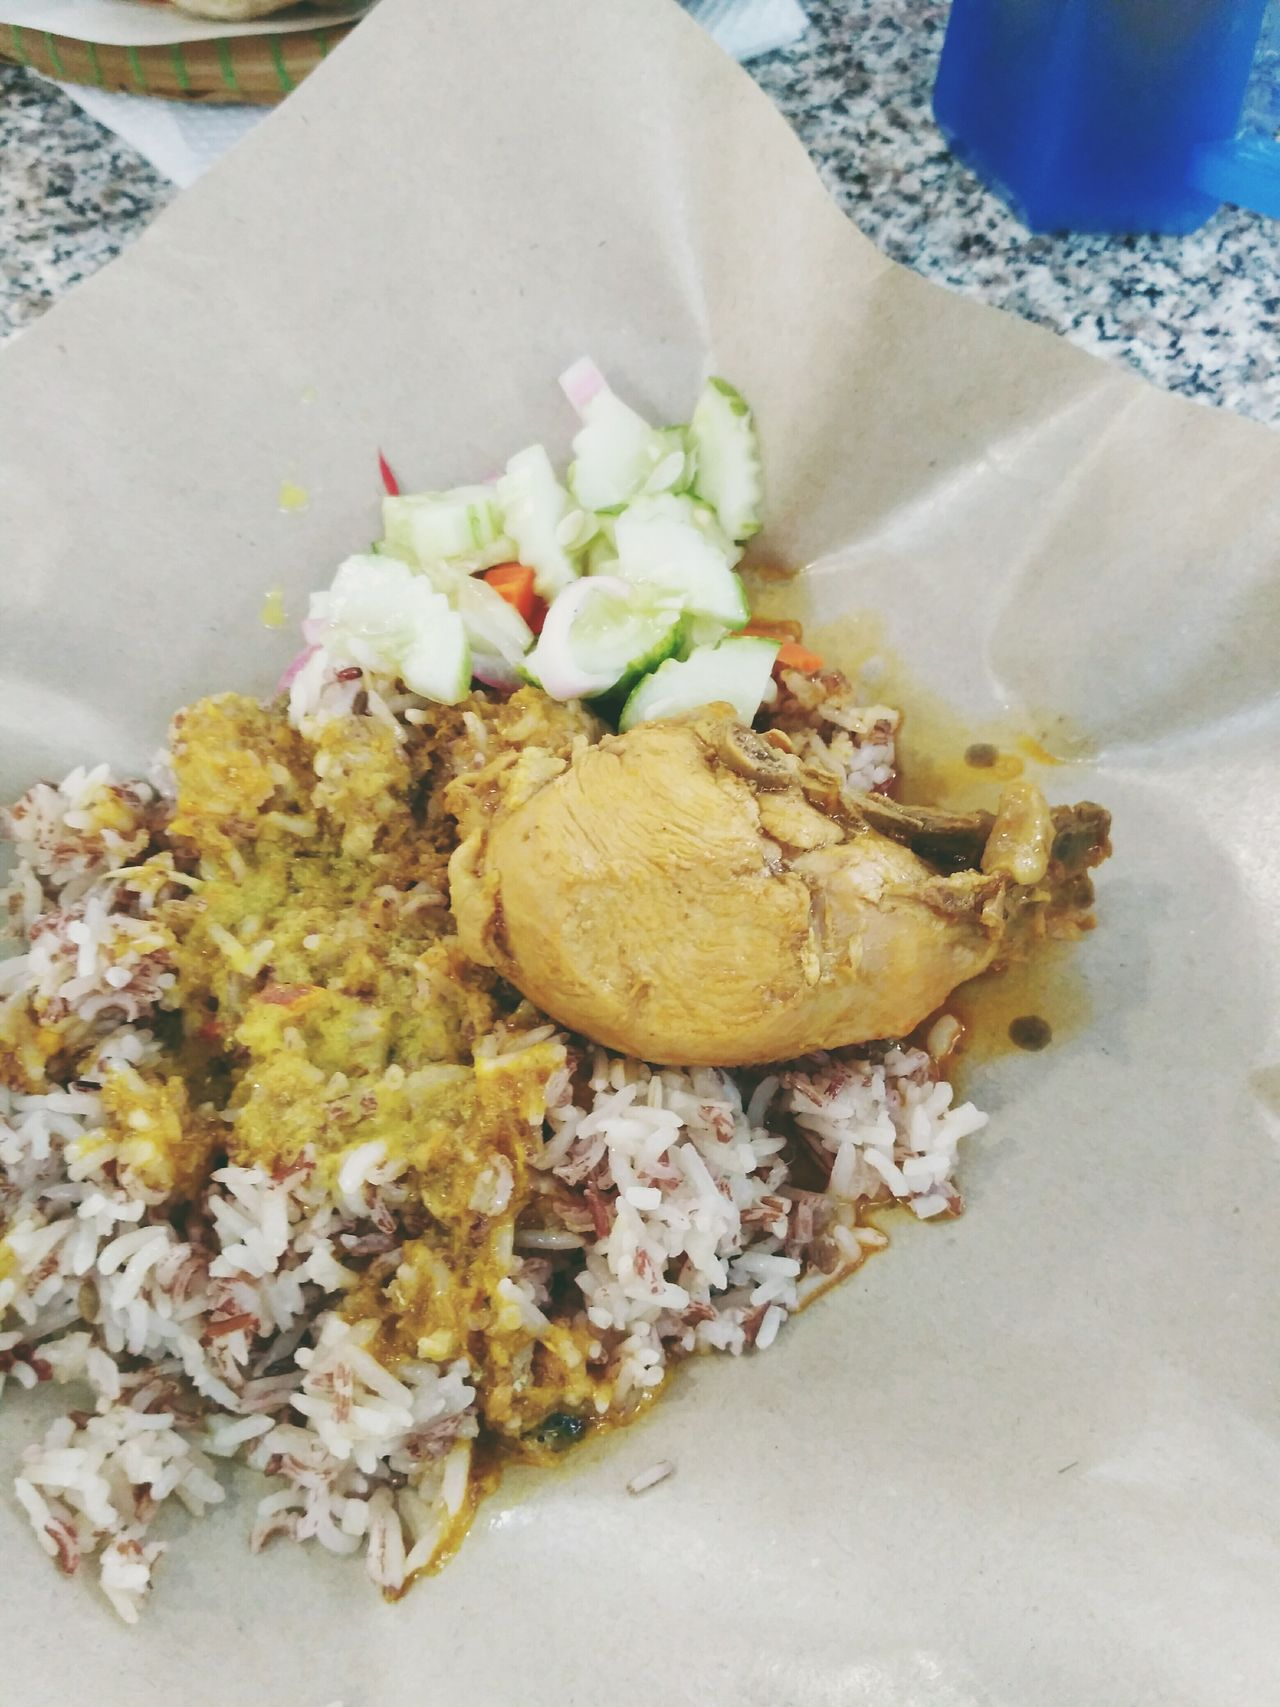 Nasi Dagang Kelantan Food And Drink Breakfast Sarapan Malaysian Food Food Kelantanfood